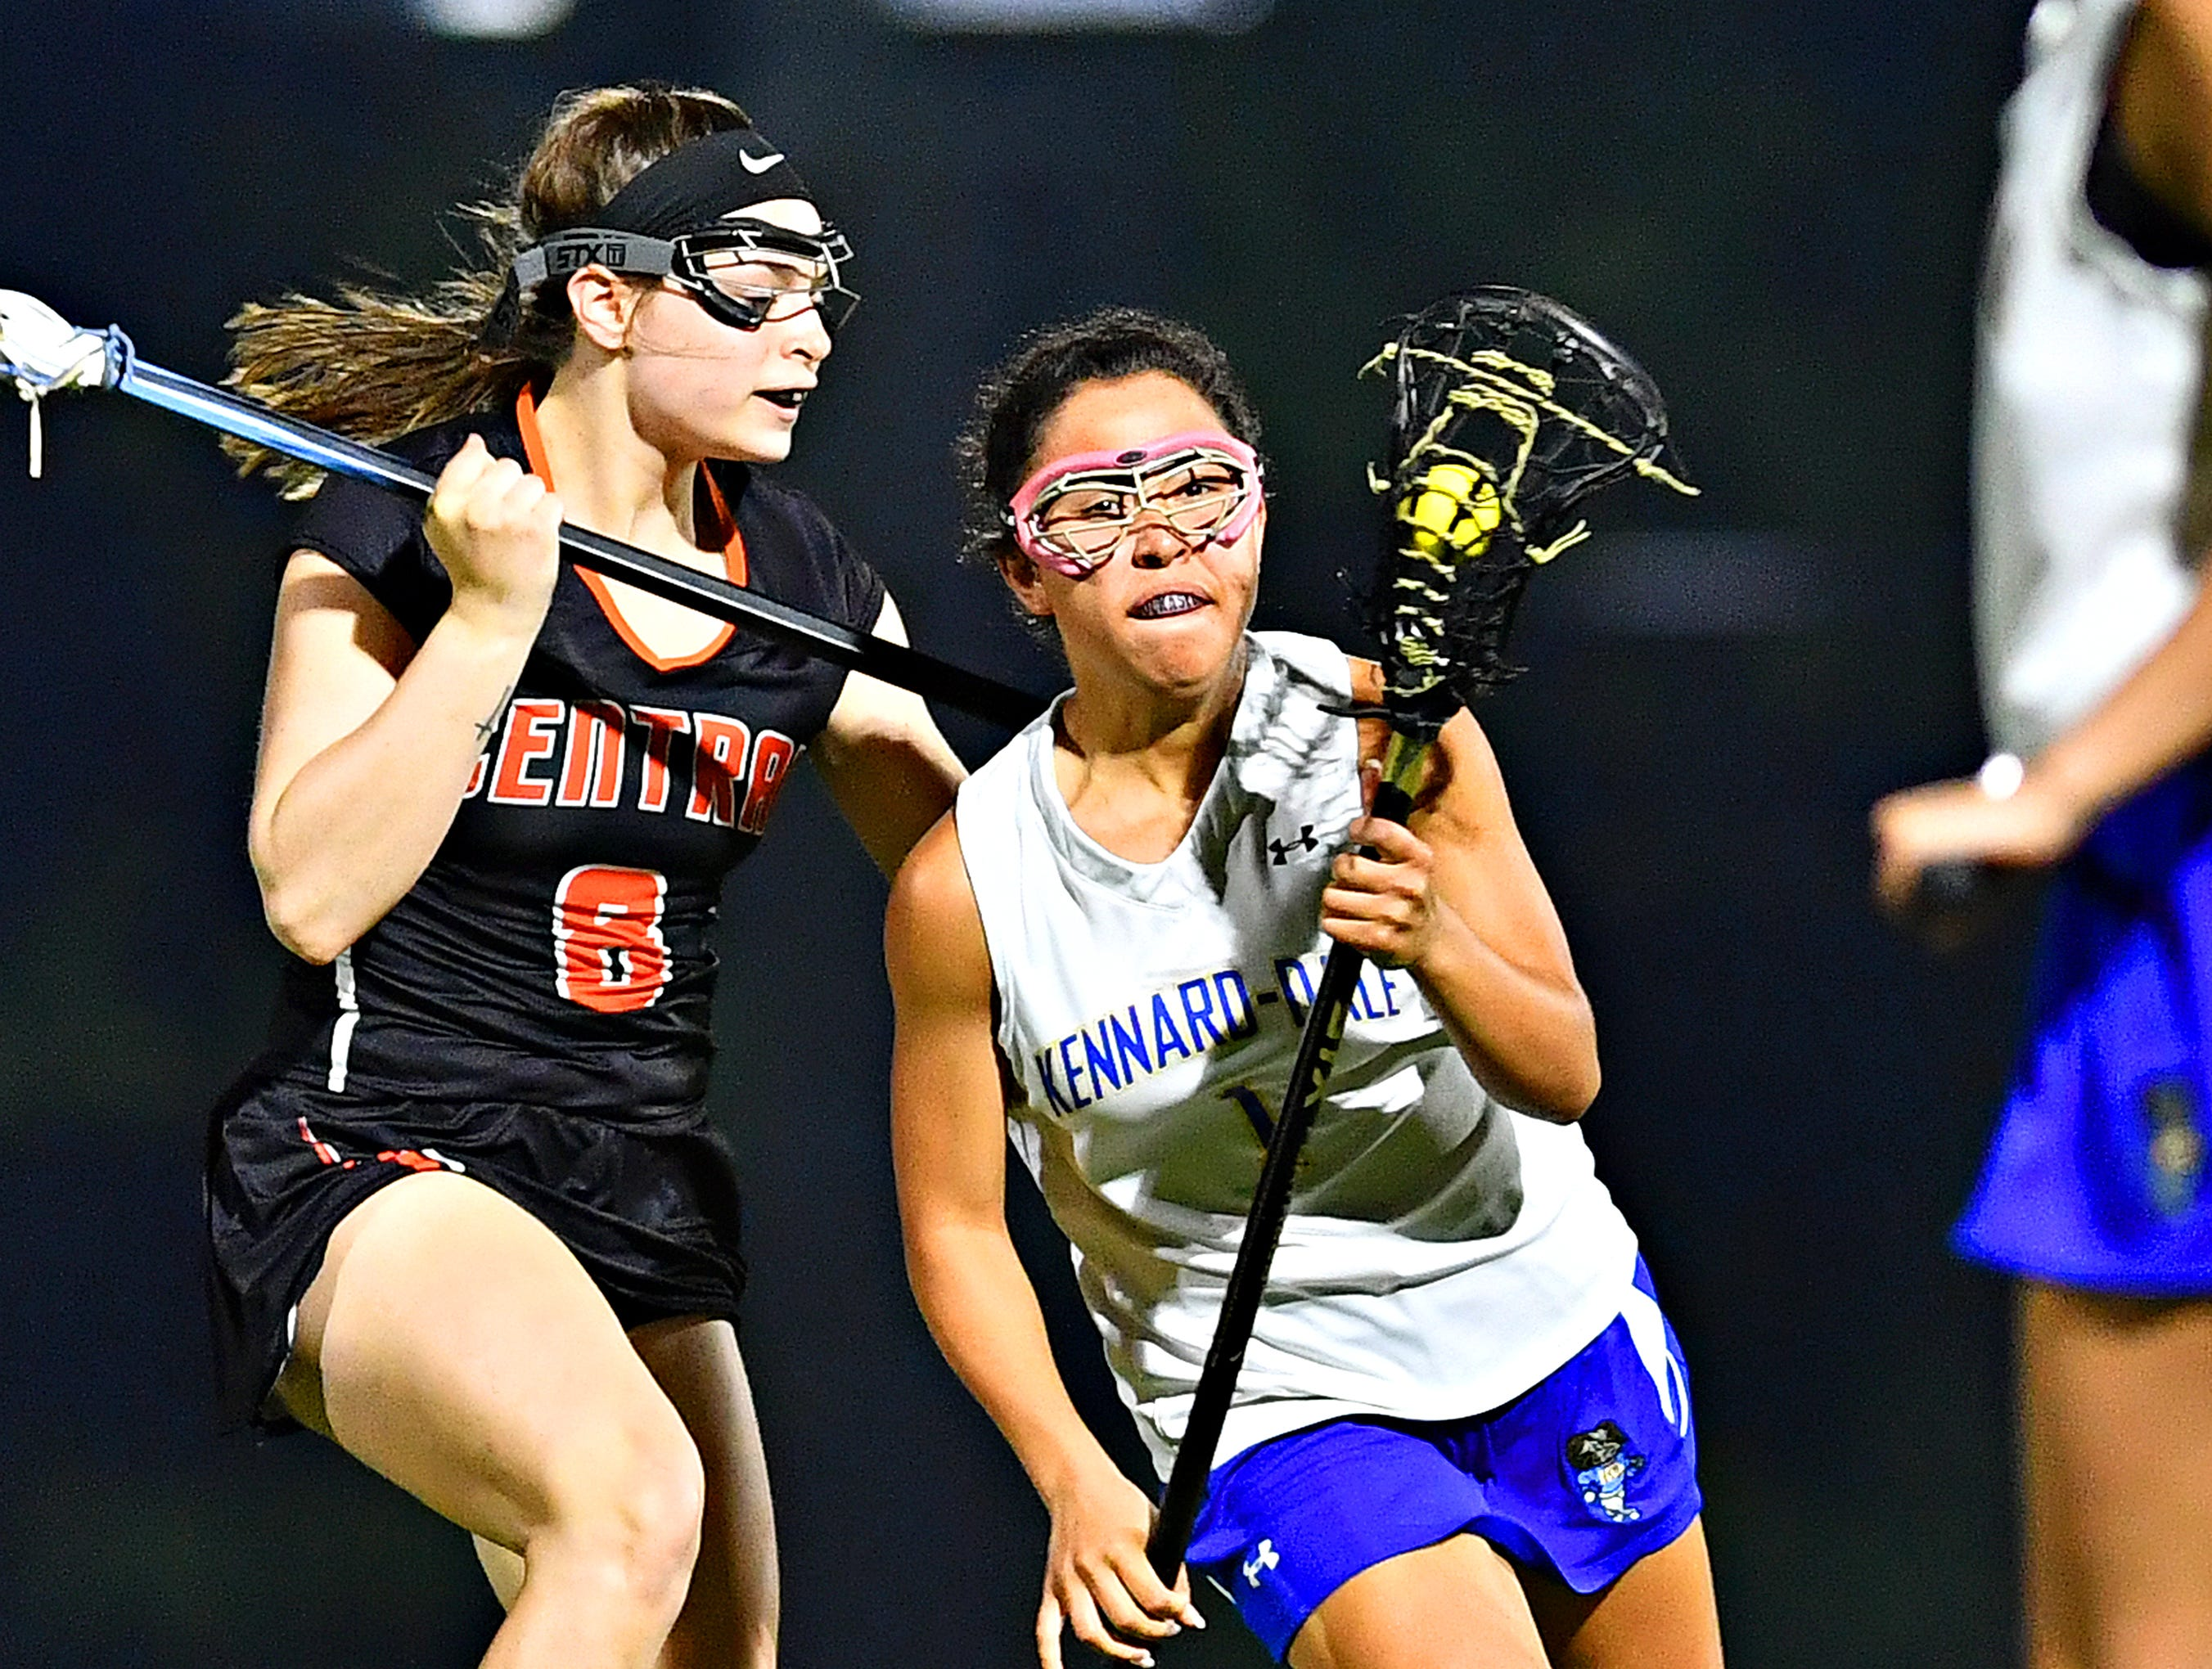 Kennard-Dale's Jenna Soukaseum, right, works to get past Central York's Emily Foxwell during girls' lacrosse semifinal action at South Western High School in Hanover, Wednesday, May 8, 2019. Kennard-Dale would win the game 19-10. Dawn J. Sagert photo